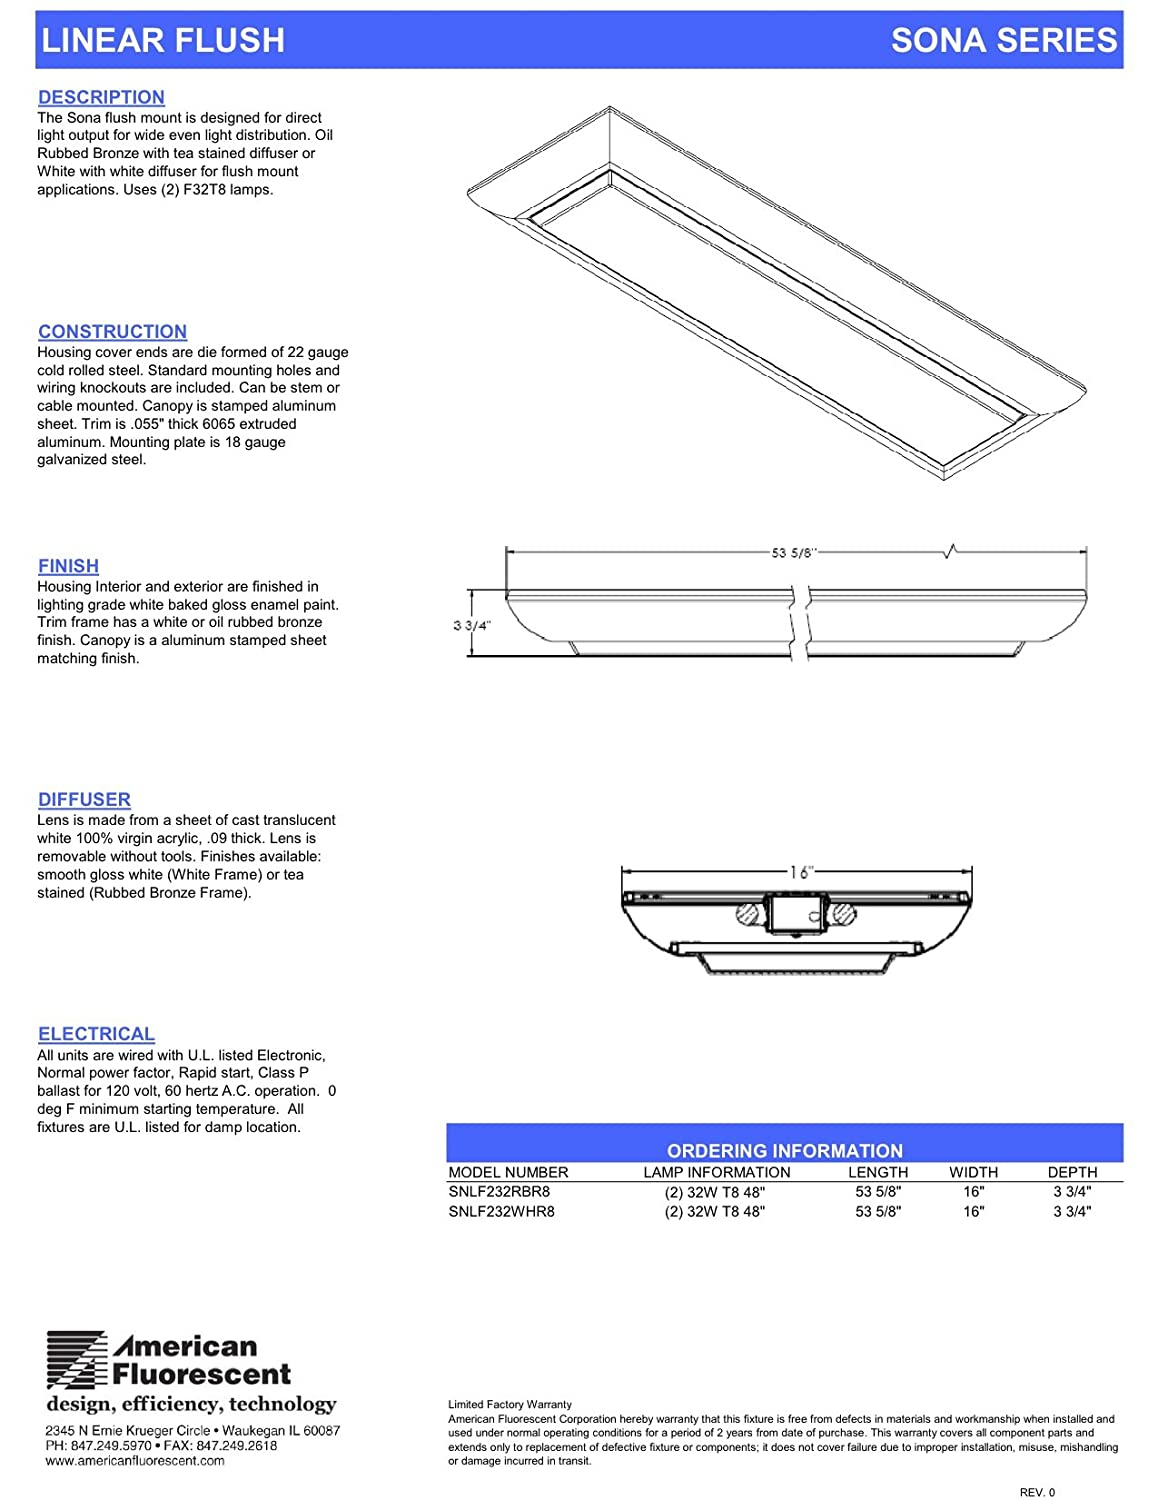 American Fluorescent Snlf232whr8 Sona 4 Decorative Linear Light Rapid Start Ballast Wiring Diagram Flushmount